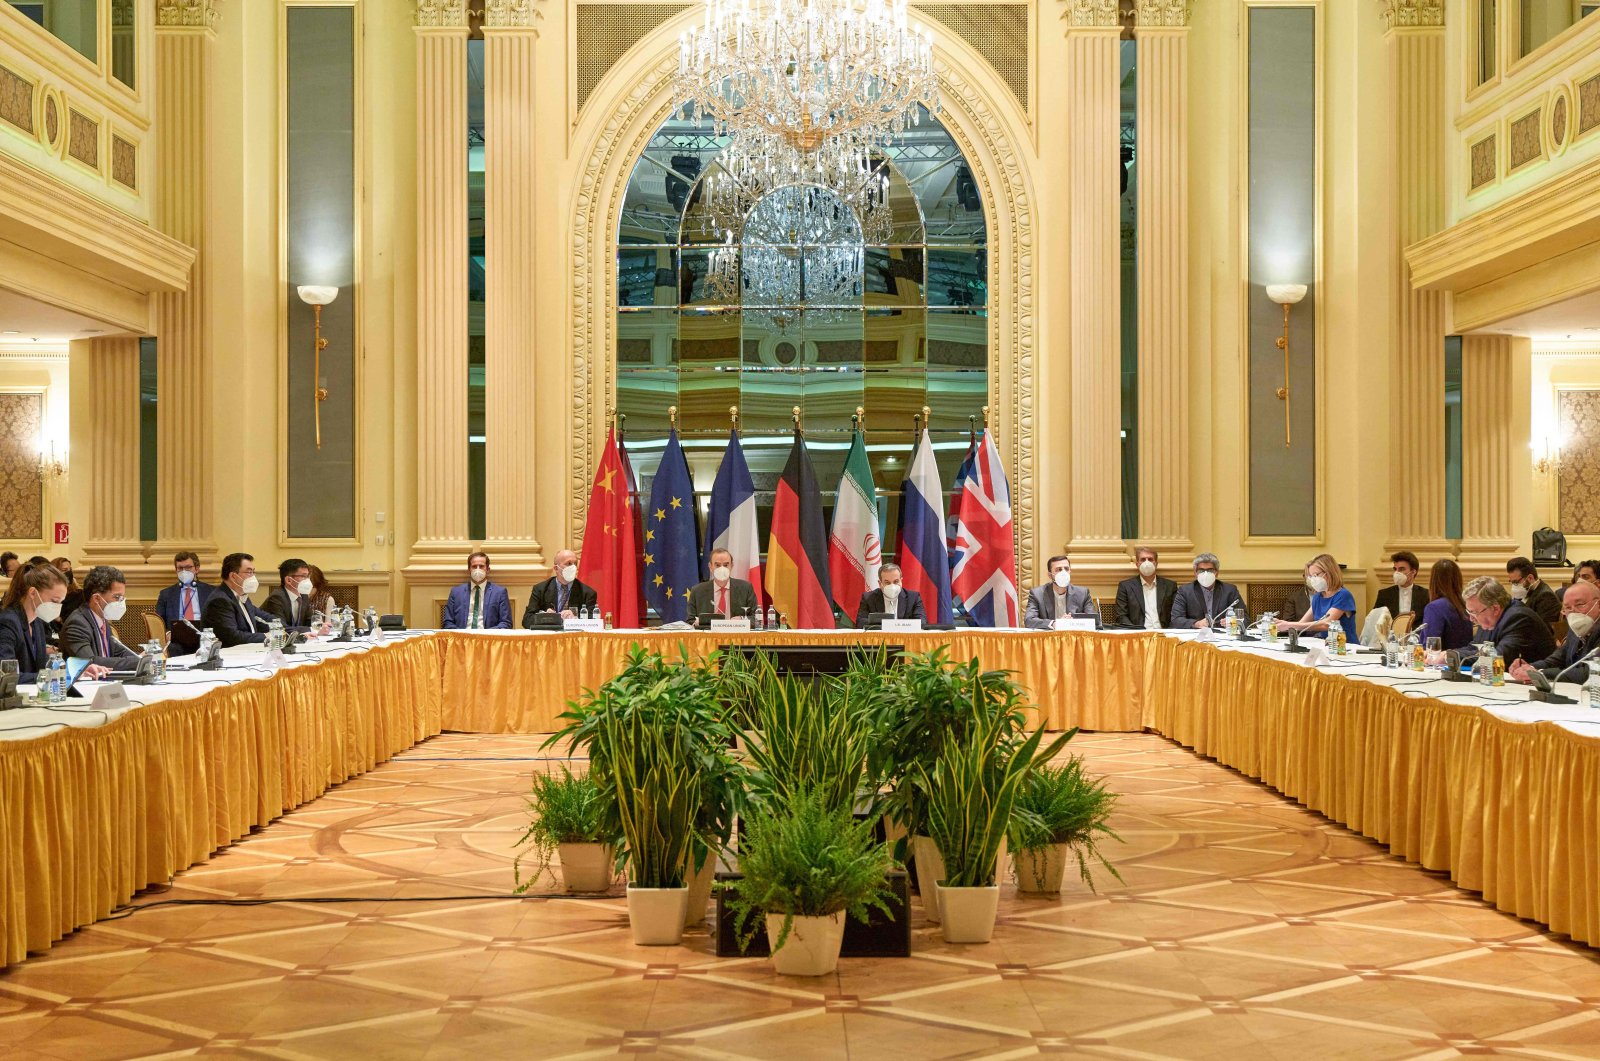 Delegation members from the parties to the Iran nuclear deal – Germany, France, Britain, China, Russia and Iran – attend a meeting at the Grand Hotel of Vienna as they try to restore the deal taken and released by the EU Delegation, Vienna, Austria, April 20, 2021. (Various sources - handout via AFP)